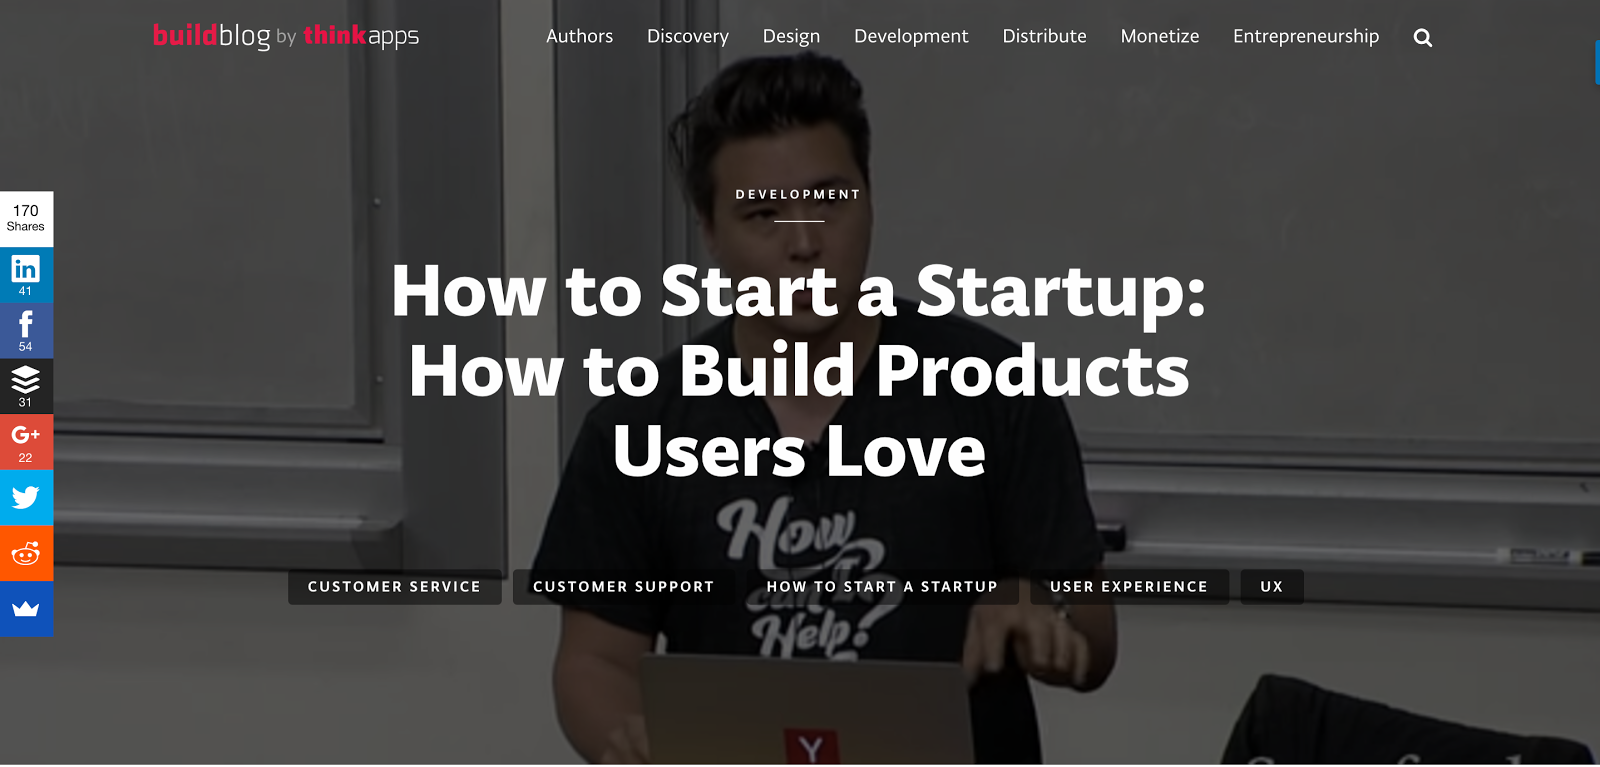 Create products users love YC 1